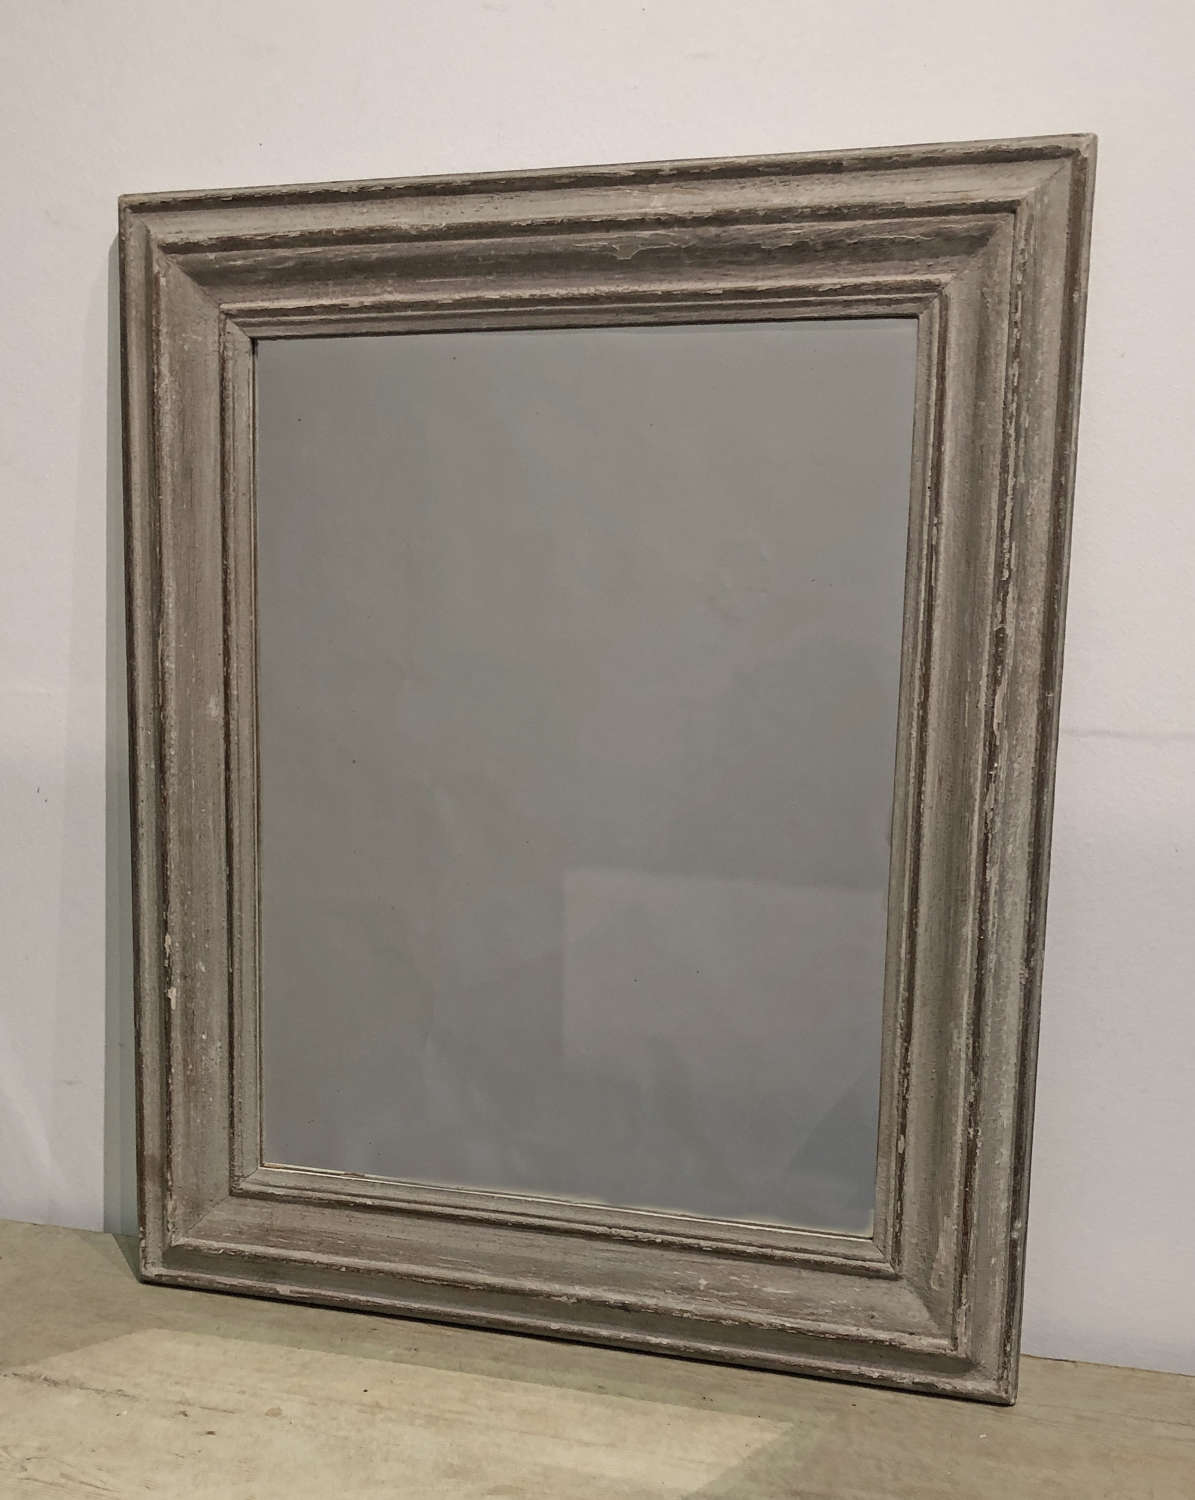 19th c French Mirror with remains of grey paint - c 1890